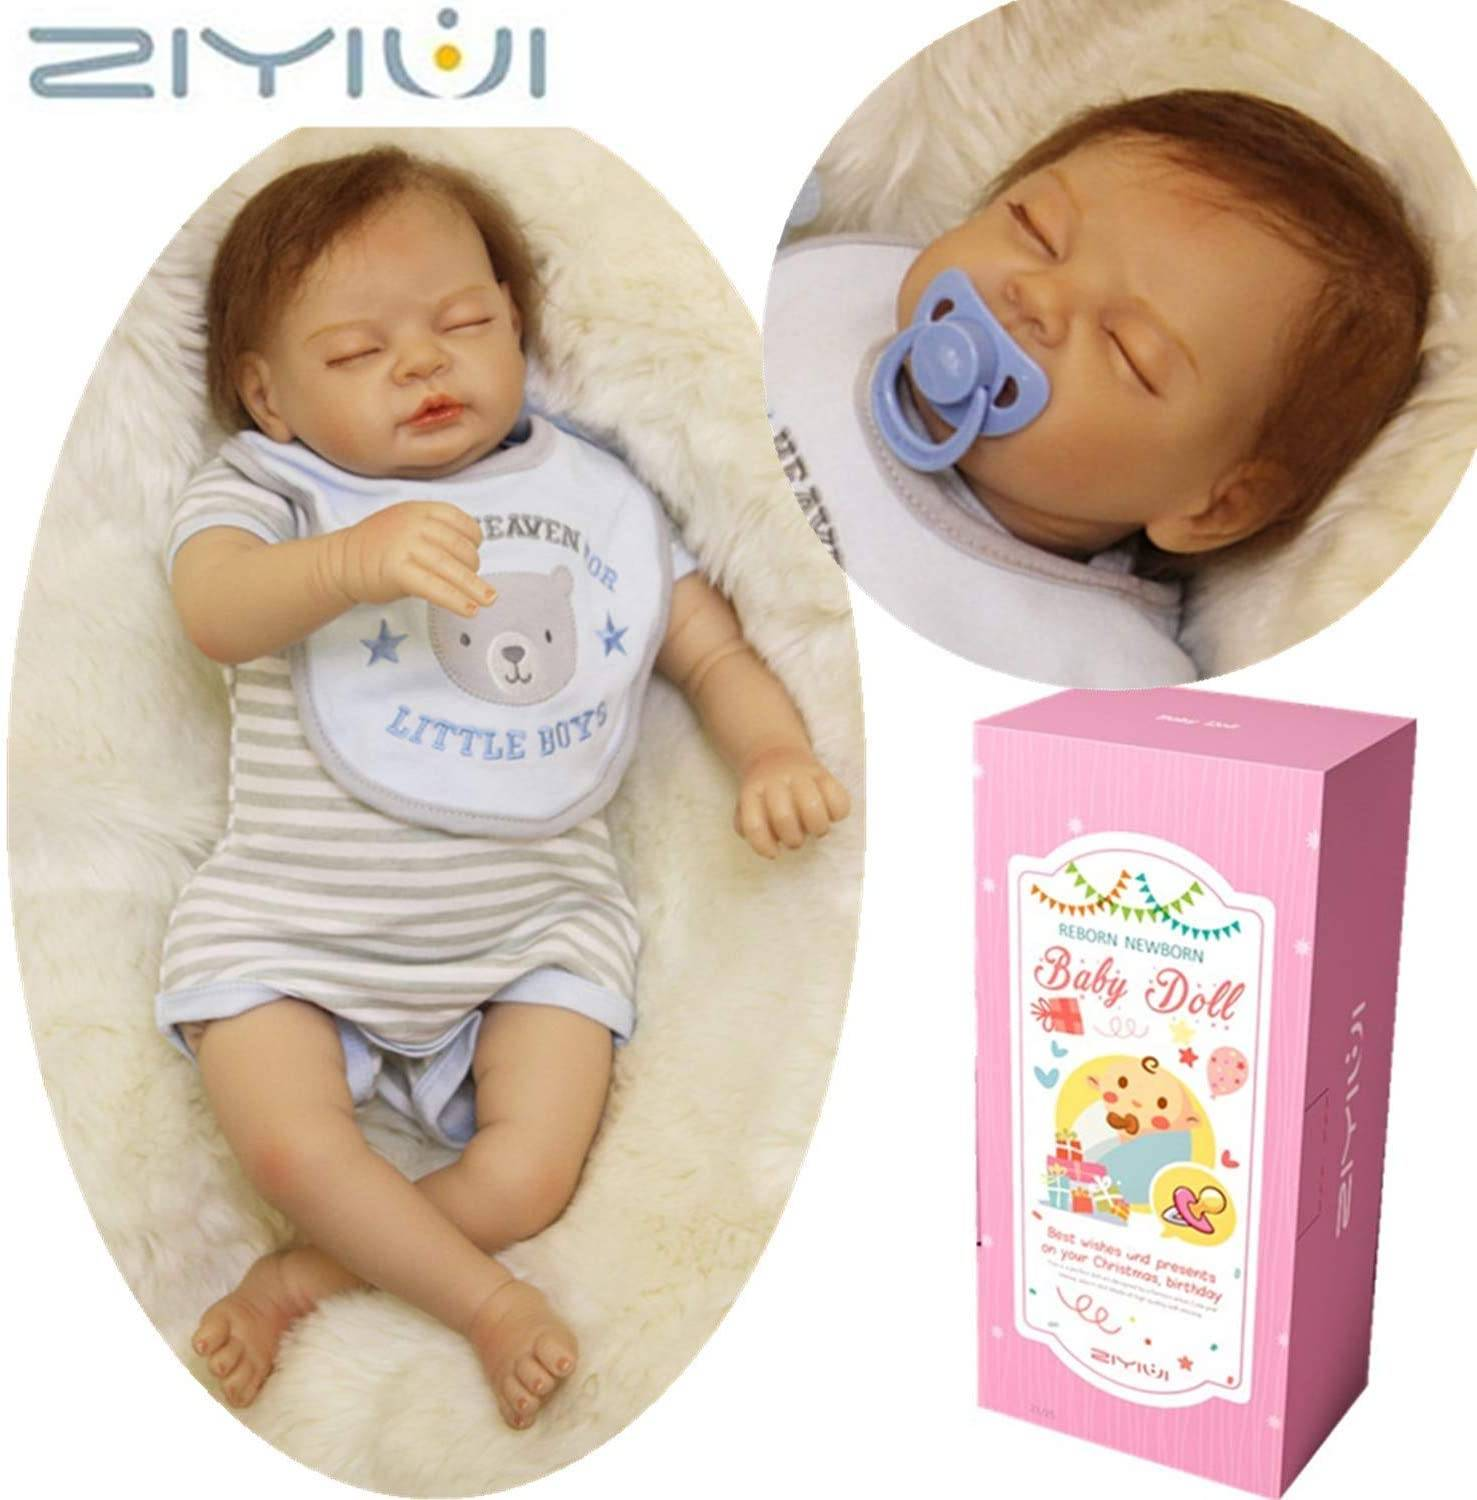 "Realistic Baby Reborn - ZIYIUI Reborn Baby Dolls 22 "" 55 cmThat Looks Real Life Babies Realistic Toddler Pretty Boy Vinyl Newborn Soft Silicone Doll Magnetic Mouth Birthday Gift Toys for age..."